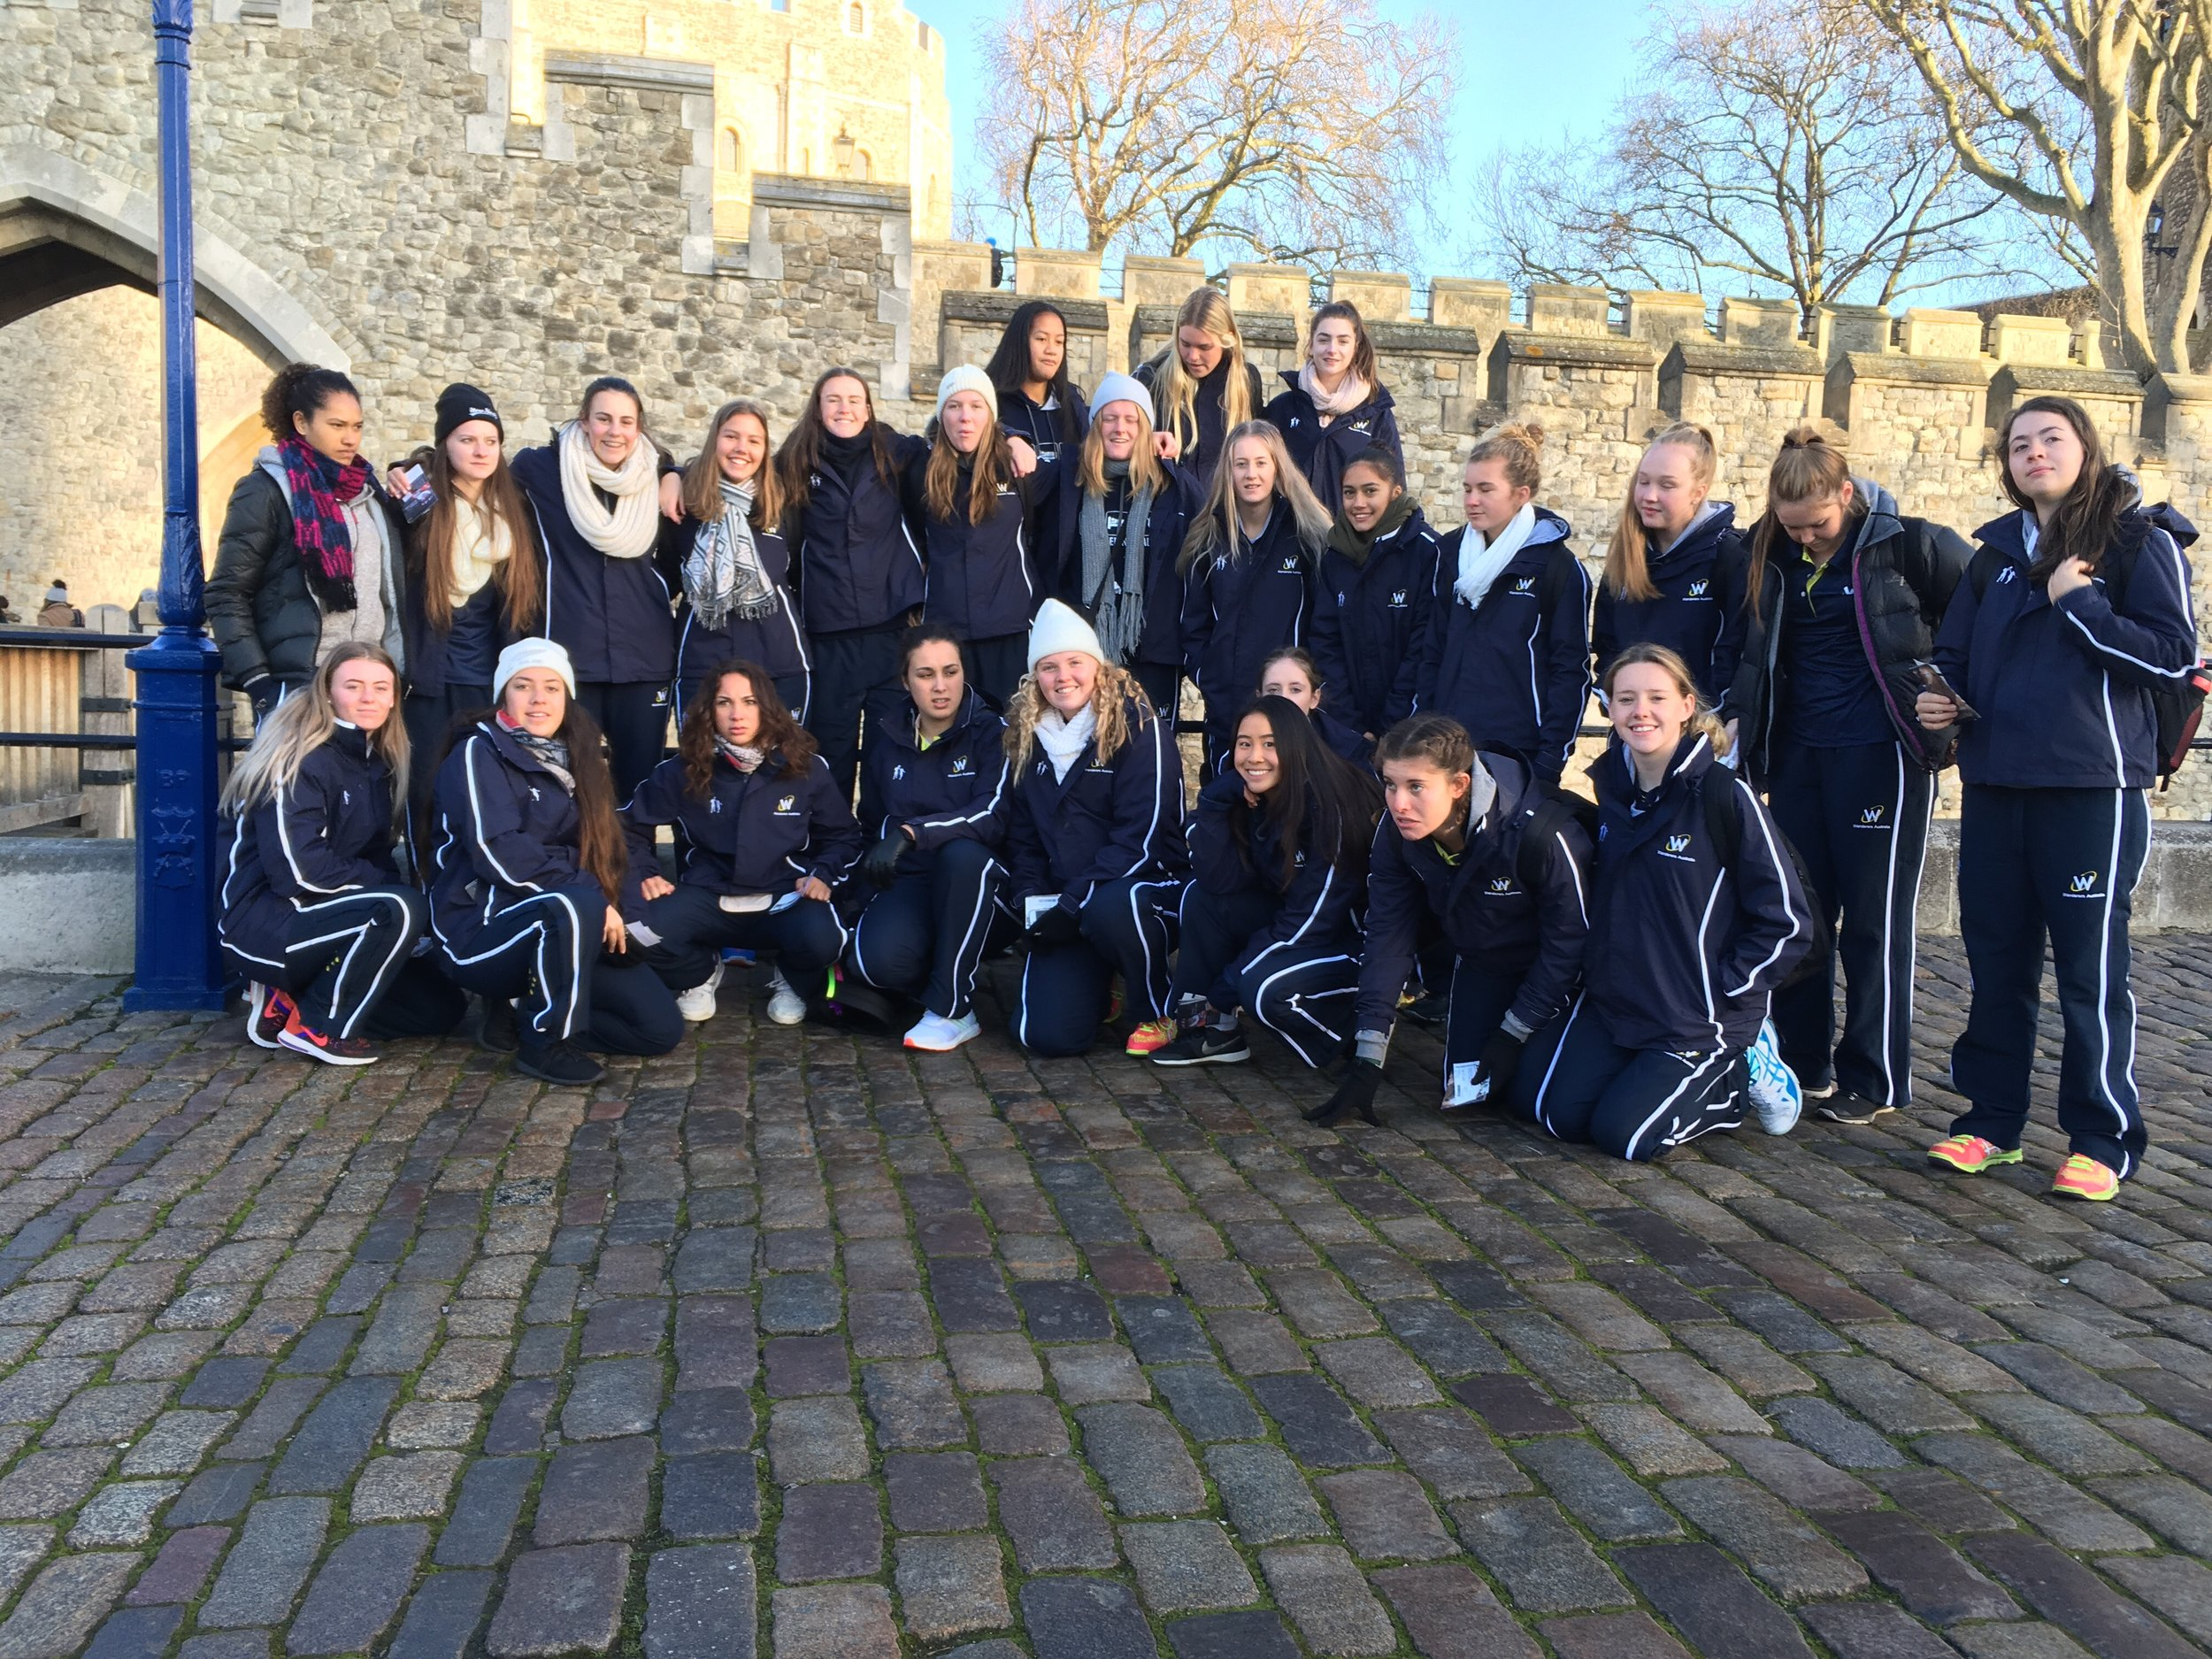 Just before we entered the Tower of London